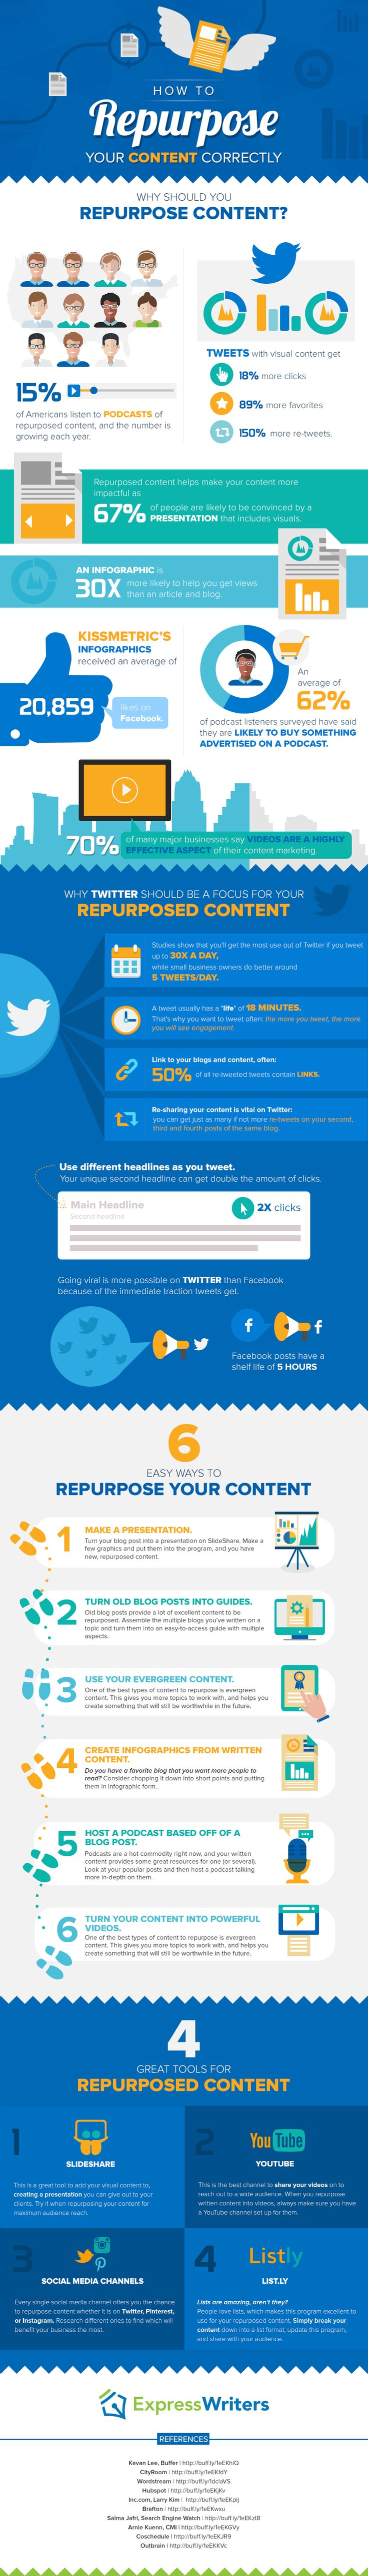 How To Reuse and Recycle Your Content To Attract New Visitors (Infographic) #blogging